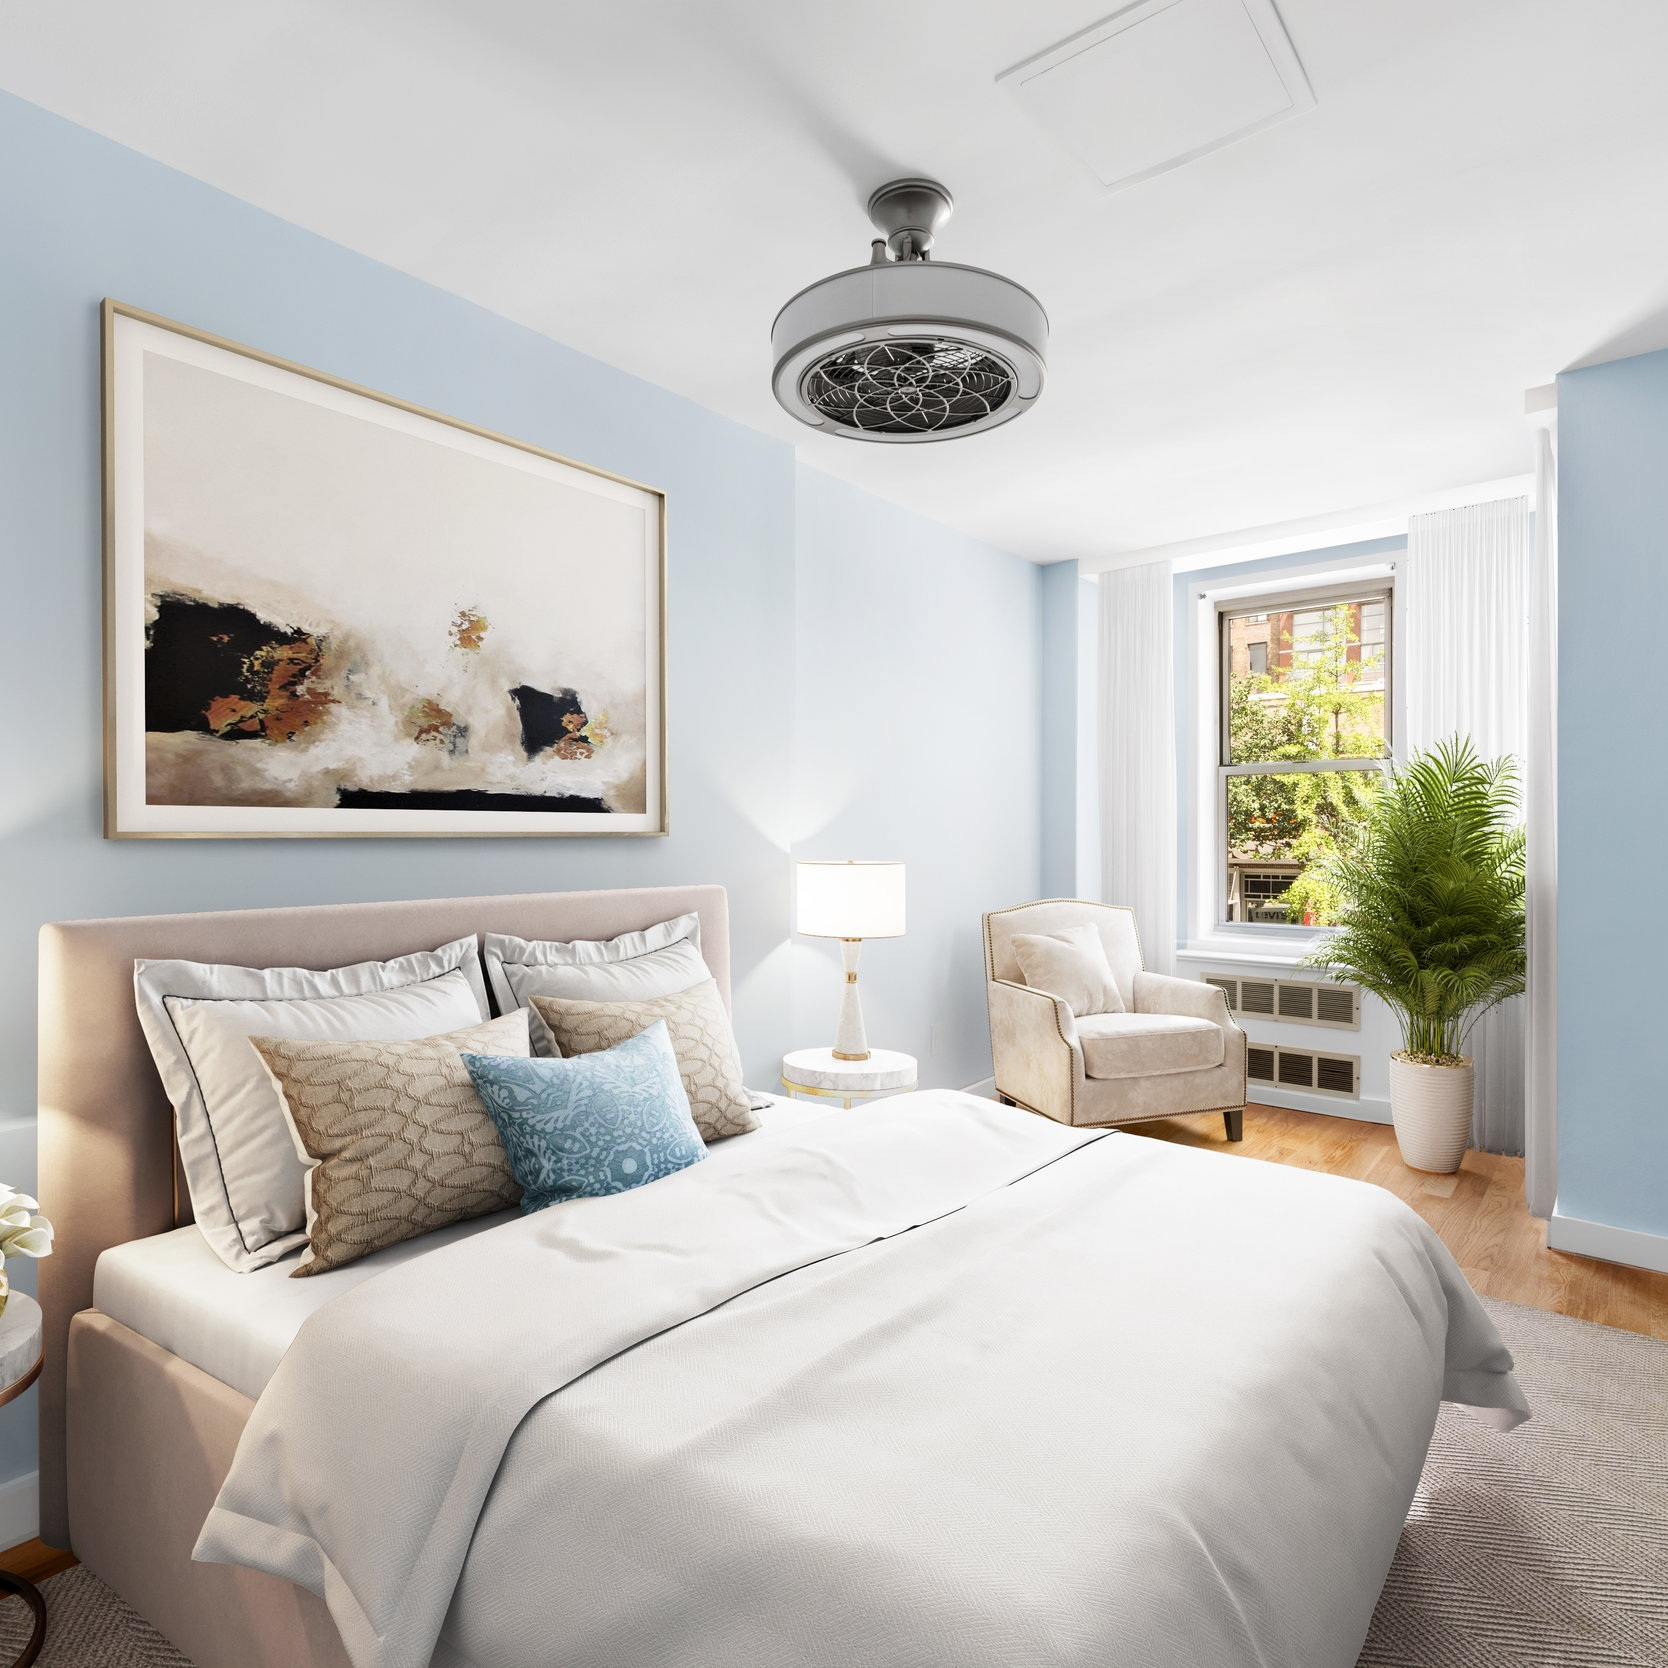 Union+Square+bedroom+blue+by+Bolster.jpg